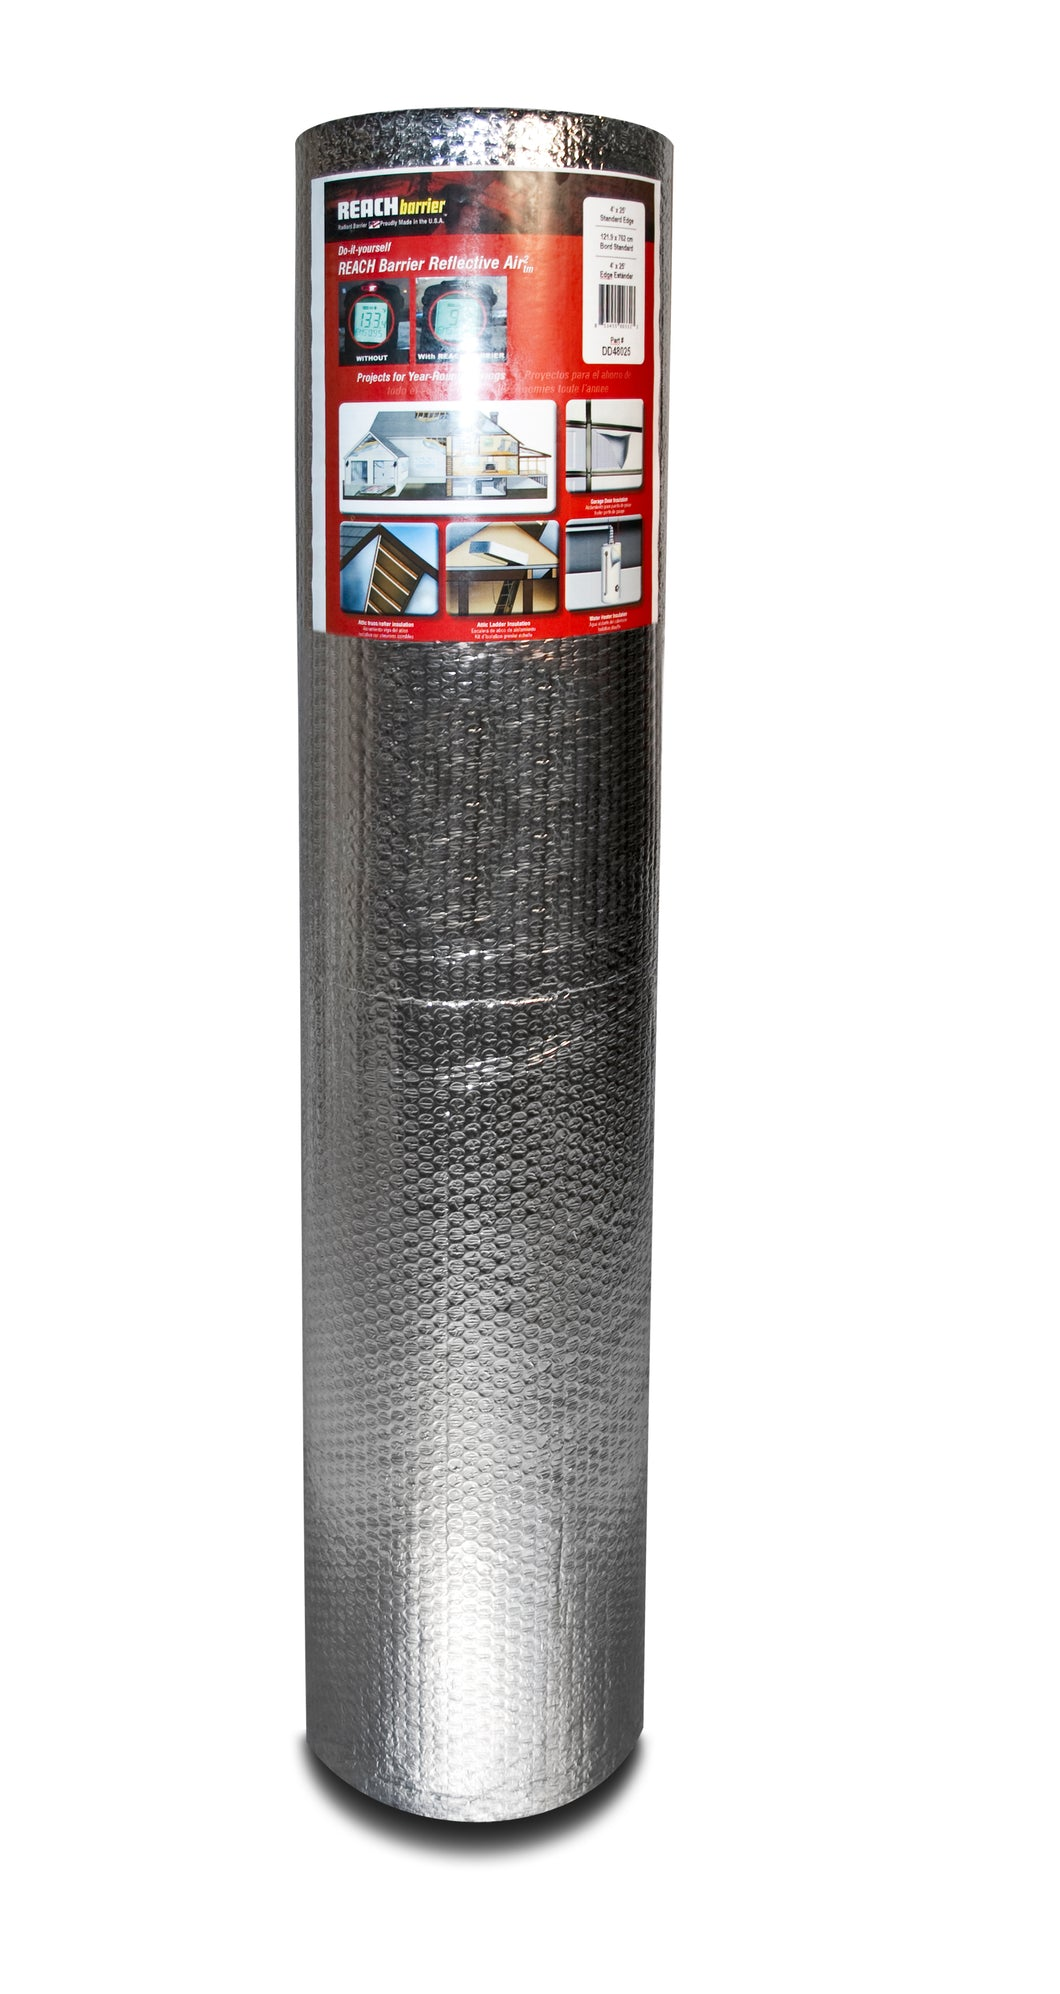 Reach Barrier Reflective Air² Roll 4'x10' (Double Reflective/Double Bubble)